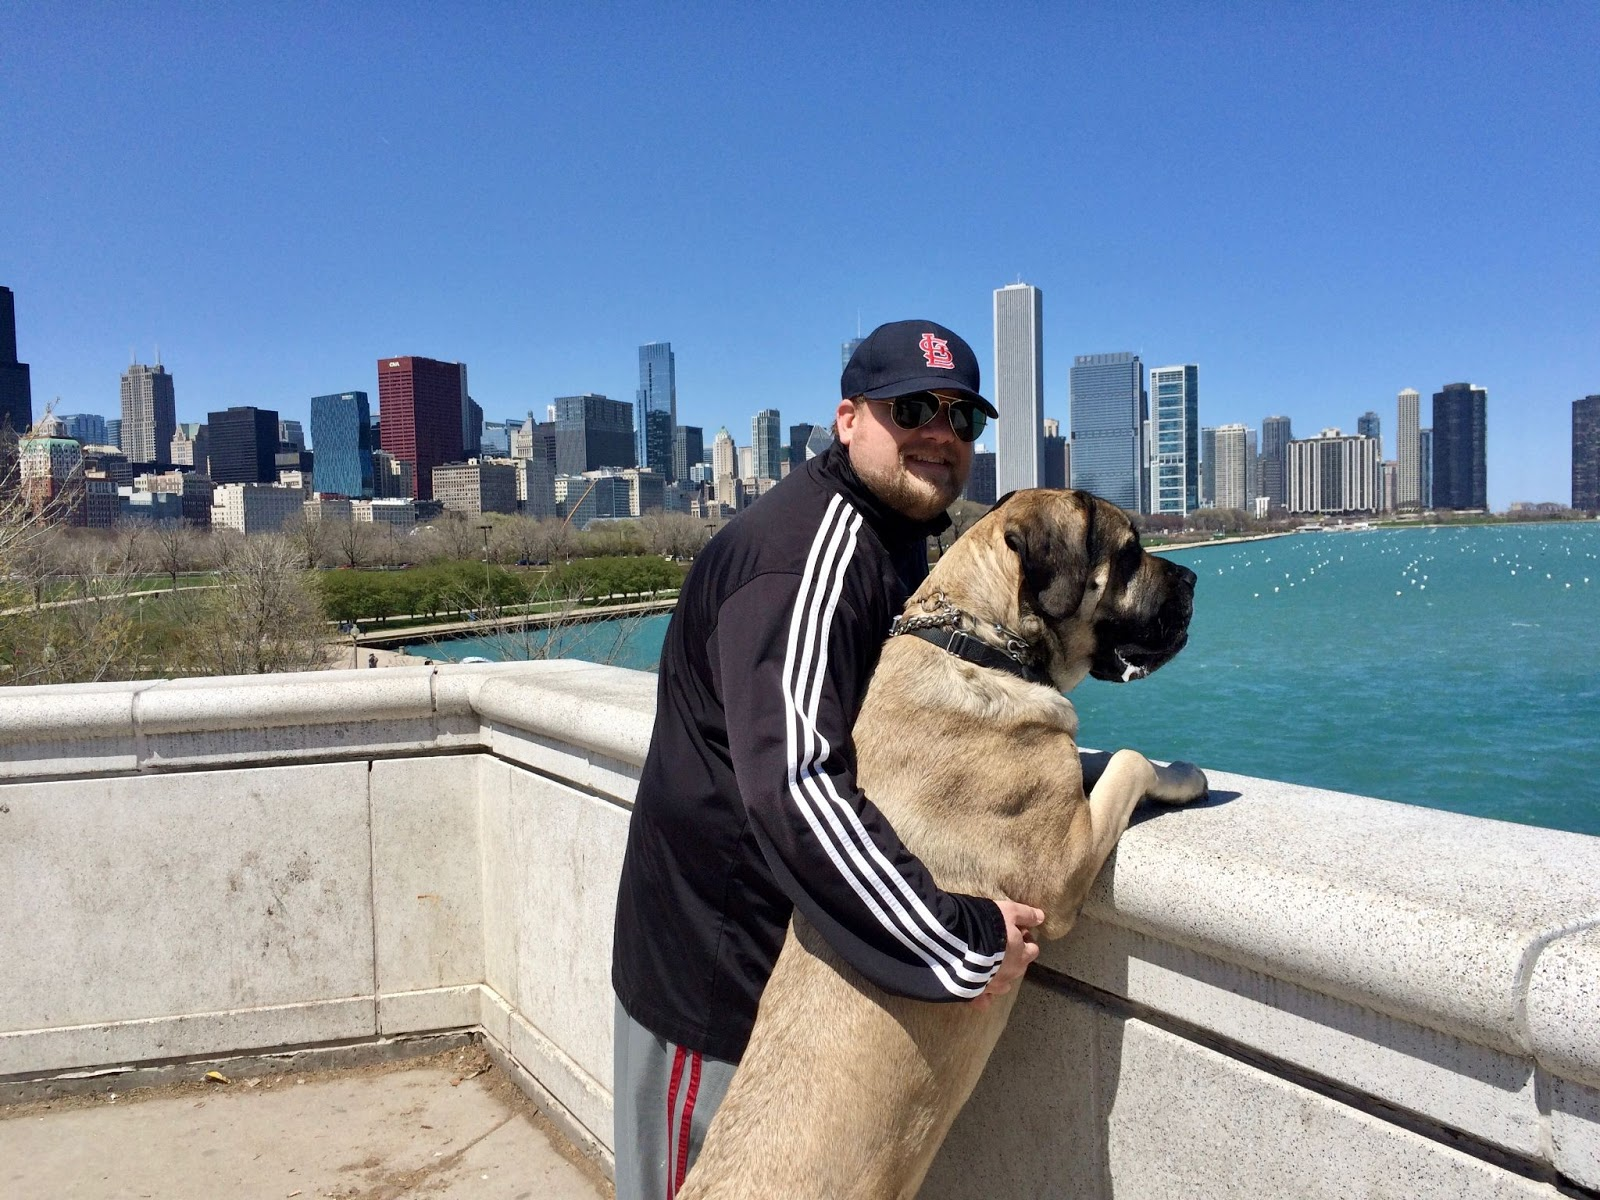 Micah with large dog in front of Chicago skyline.